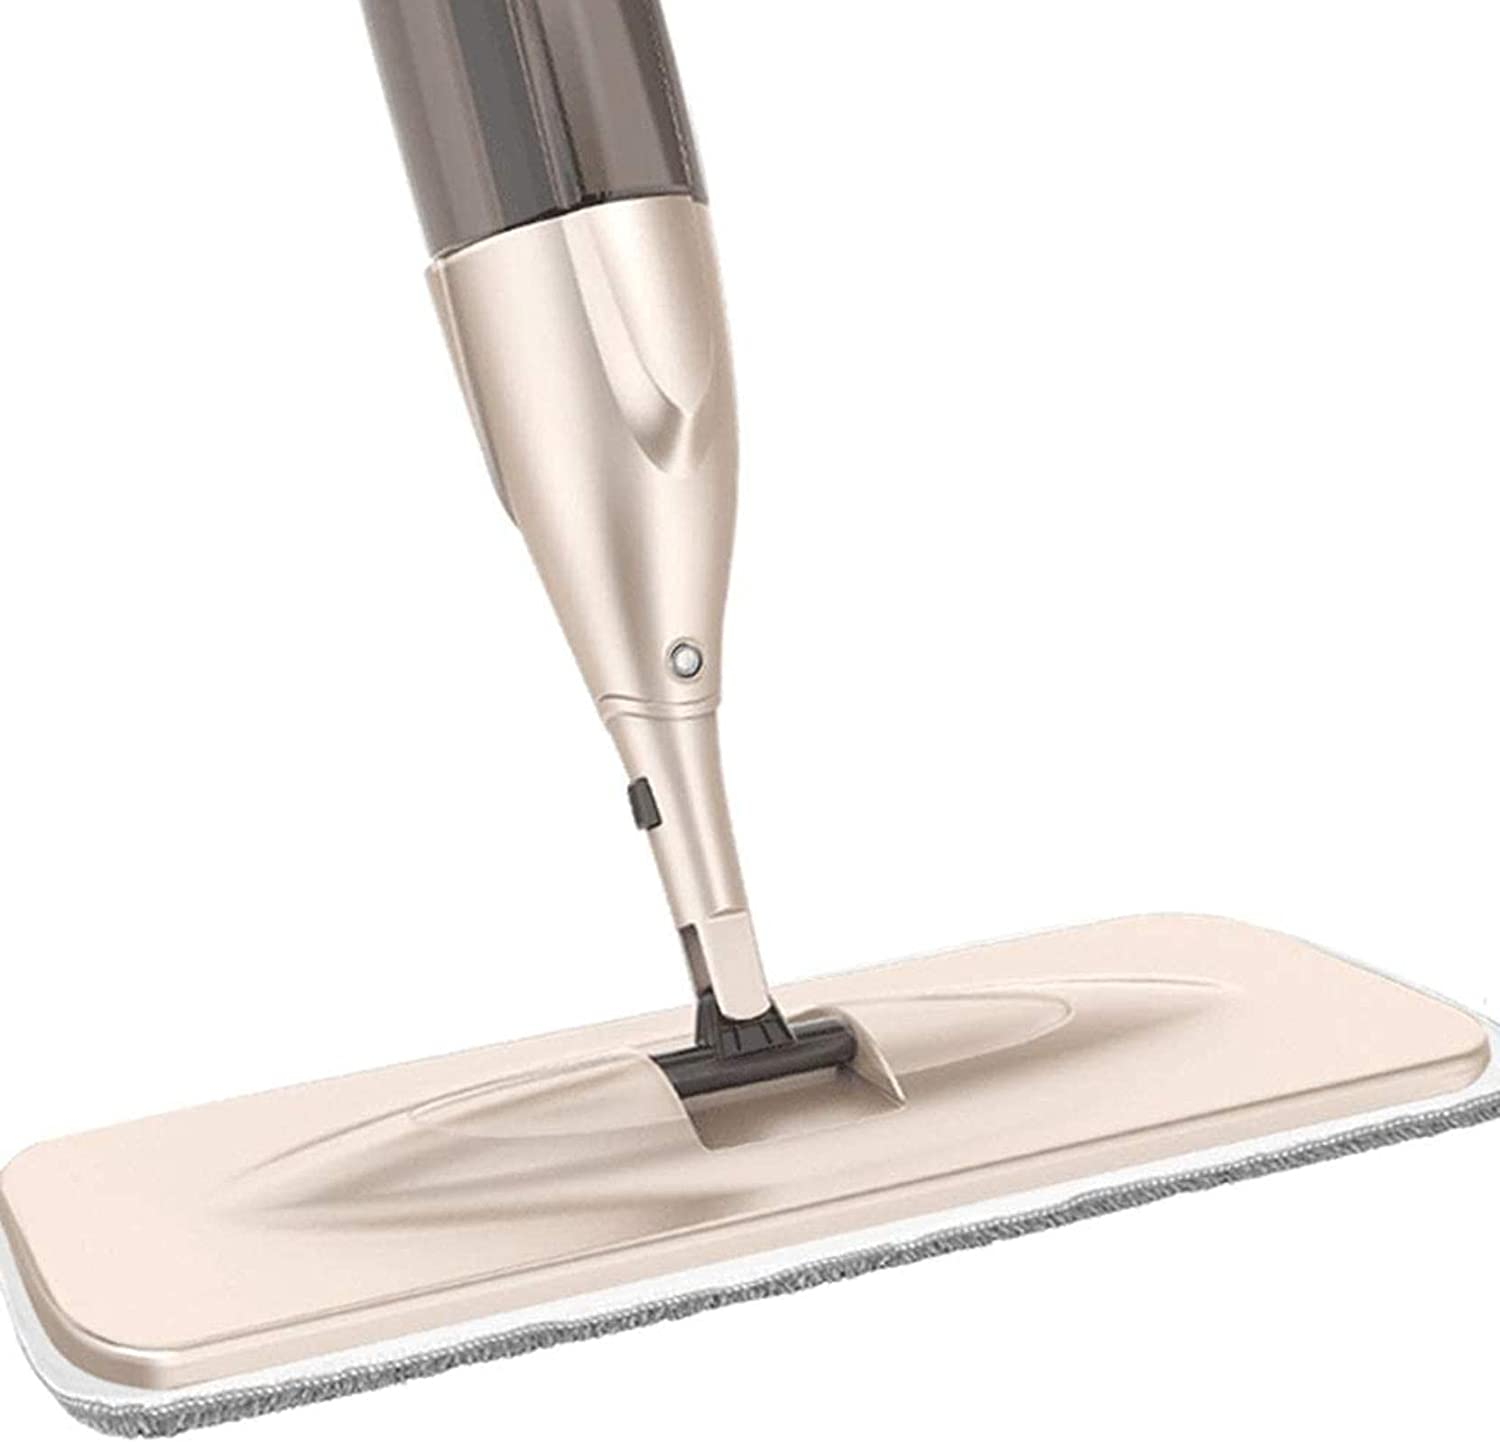 ZXCVBNN High quality new Special Campaign Microfibre Spray Mop Wet Broom Vacuum Cleaner for Hard